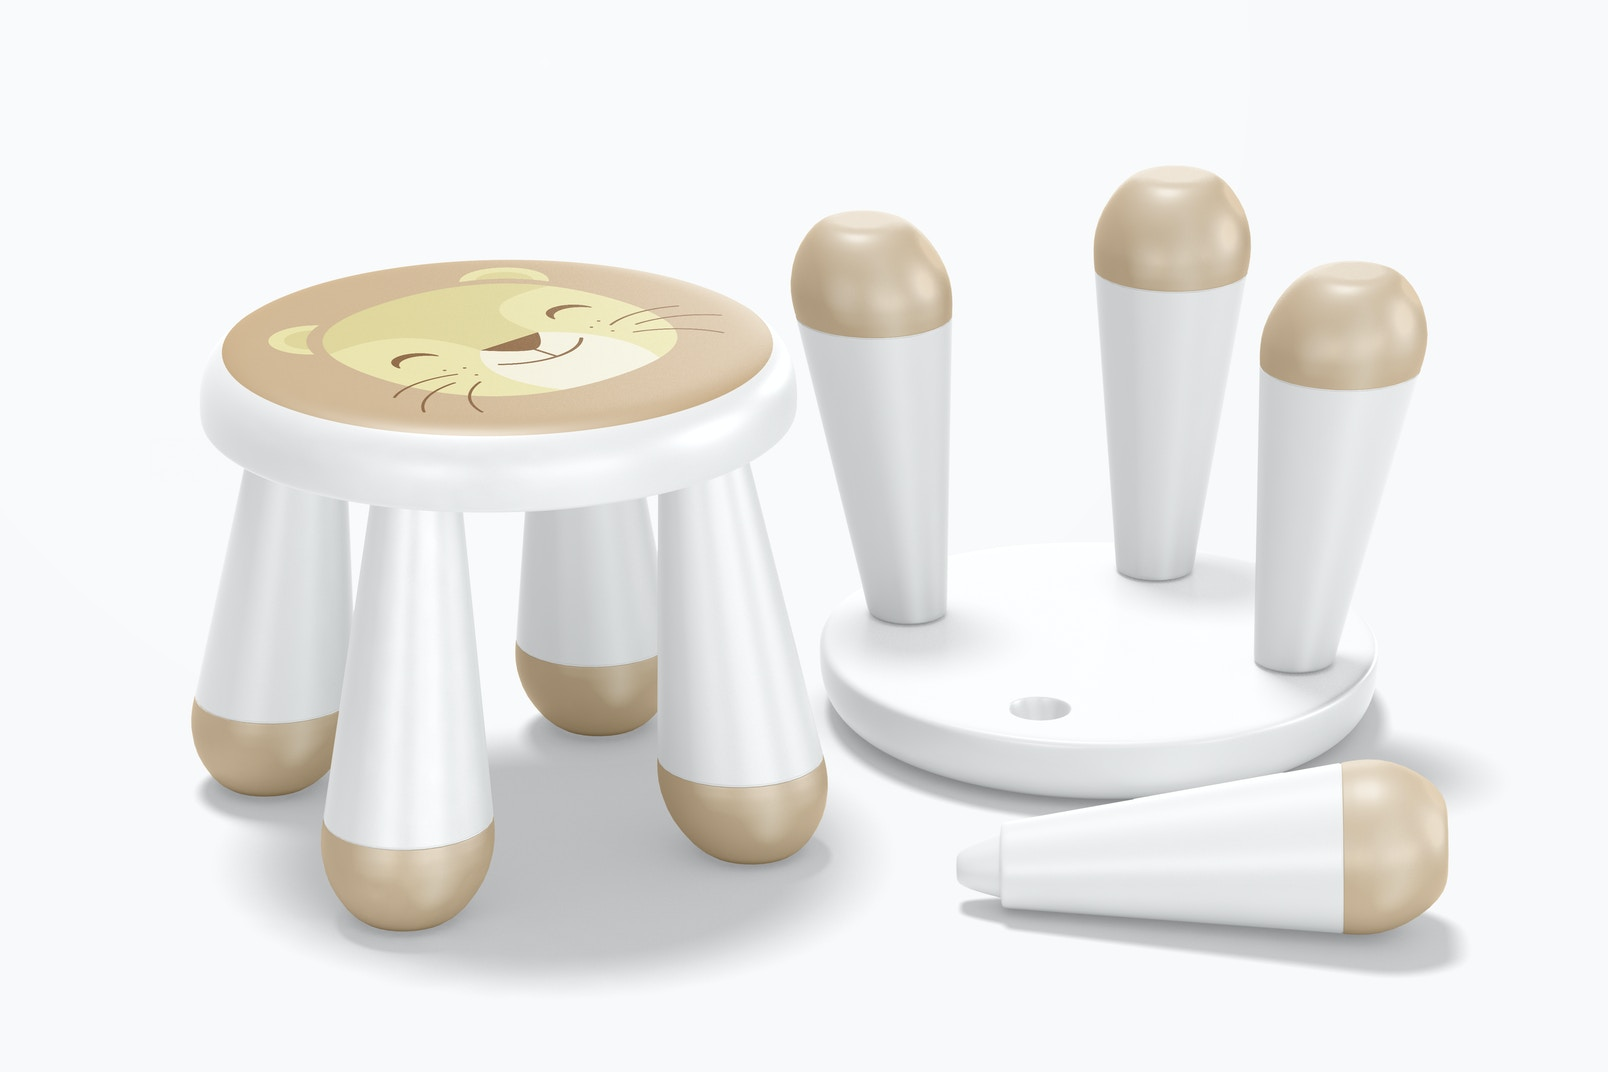 Kids Plastic Stool Mockup, Standing and Dropped 02